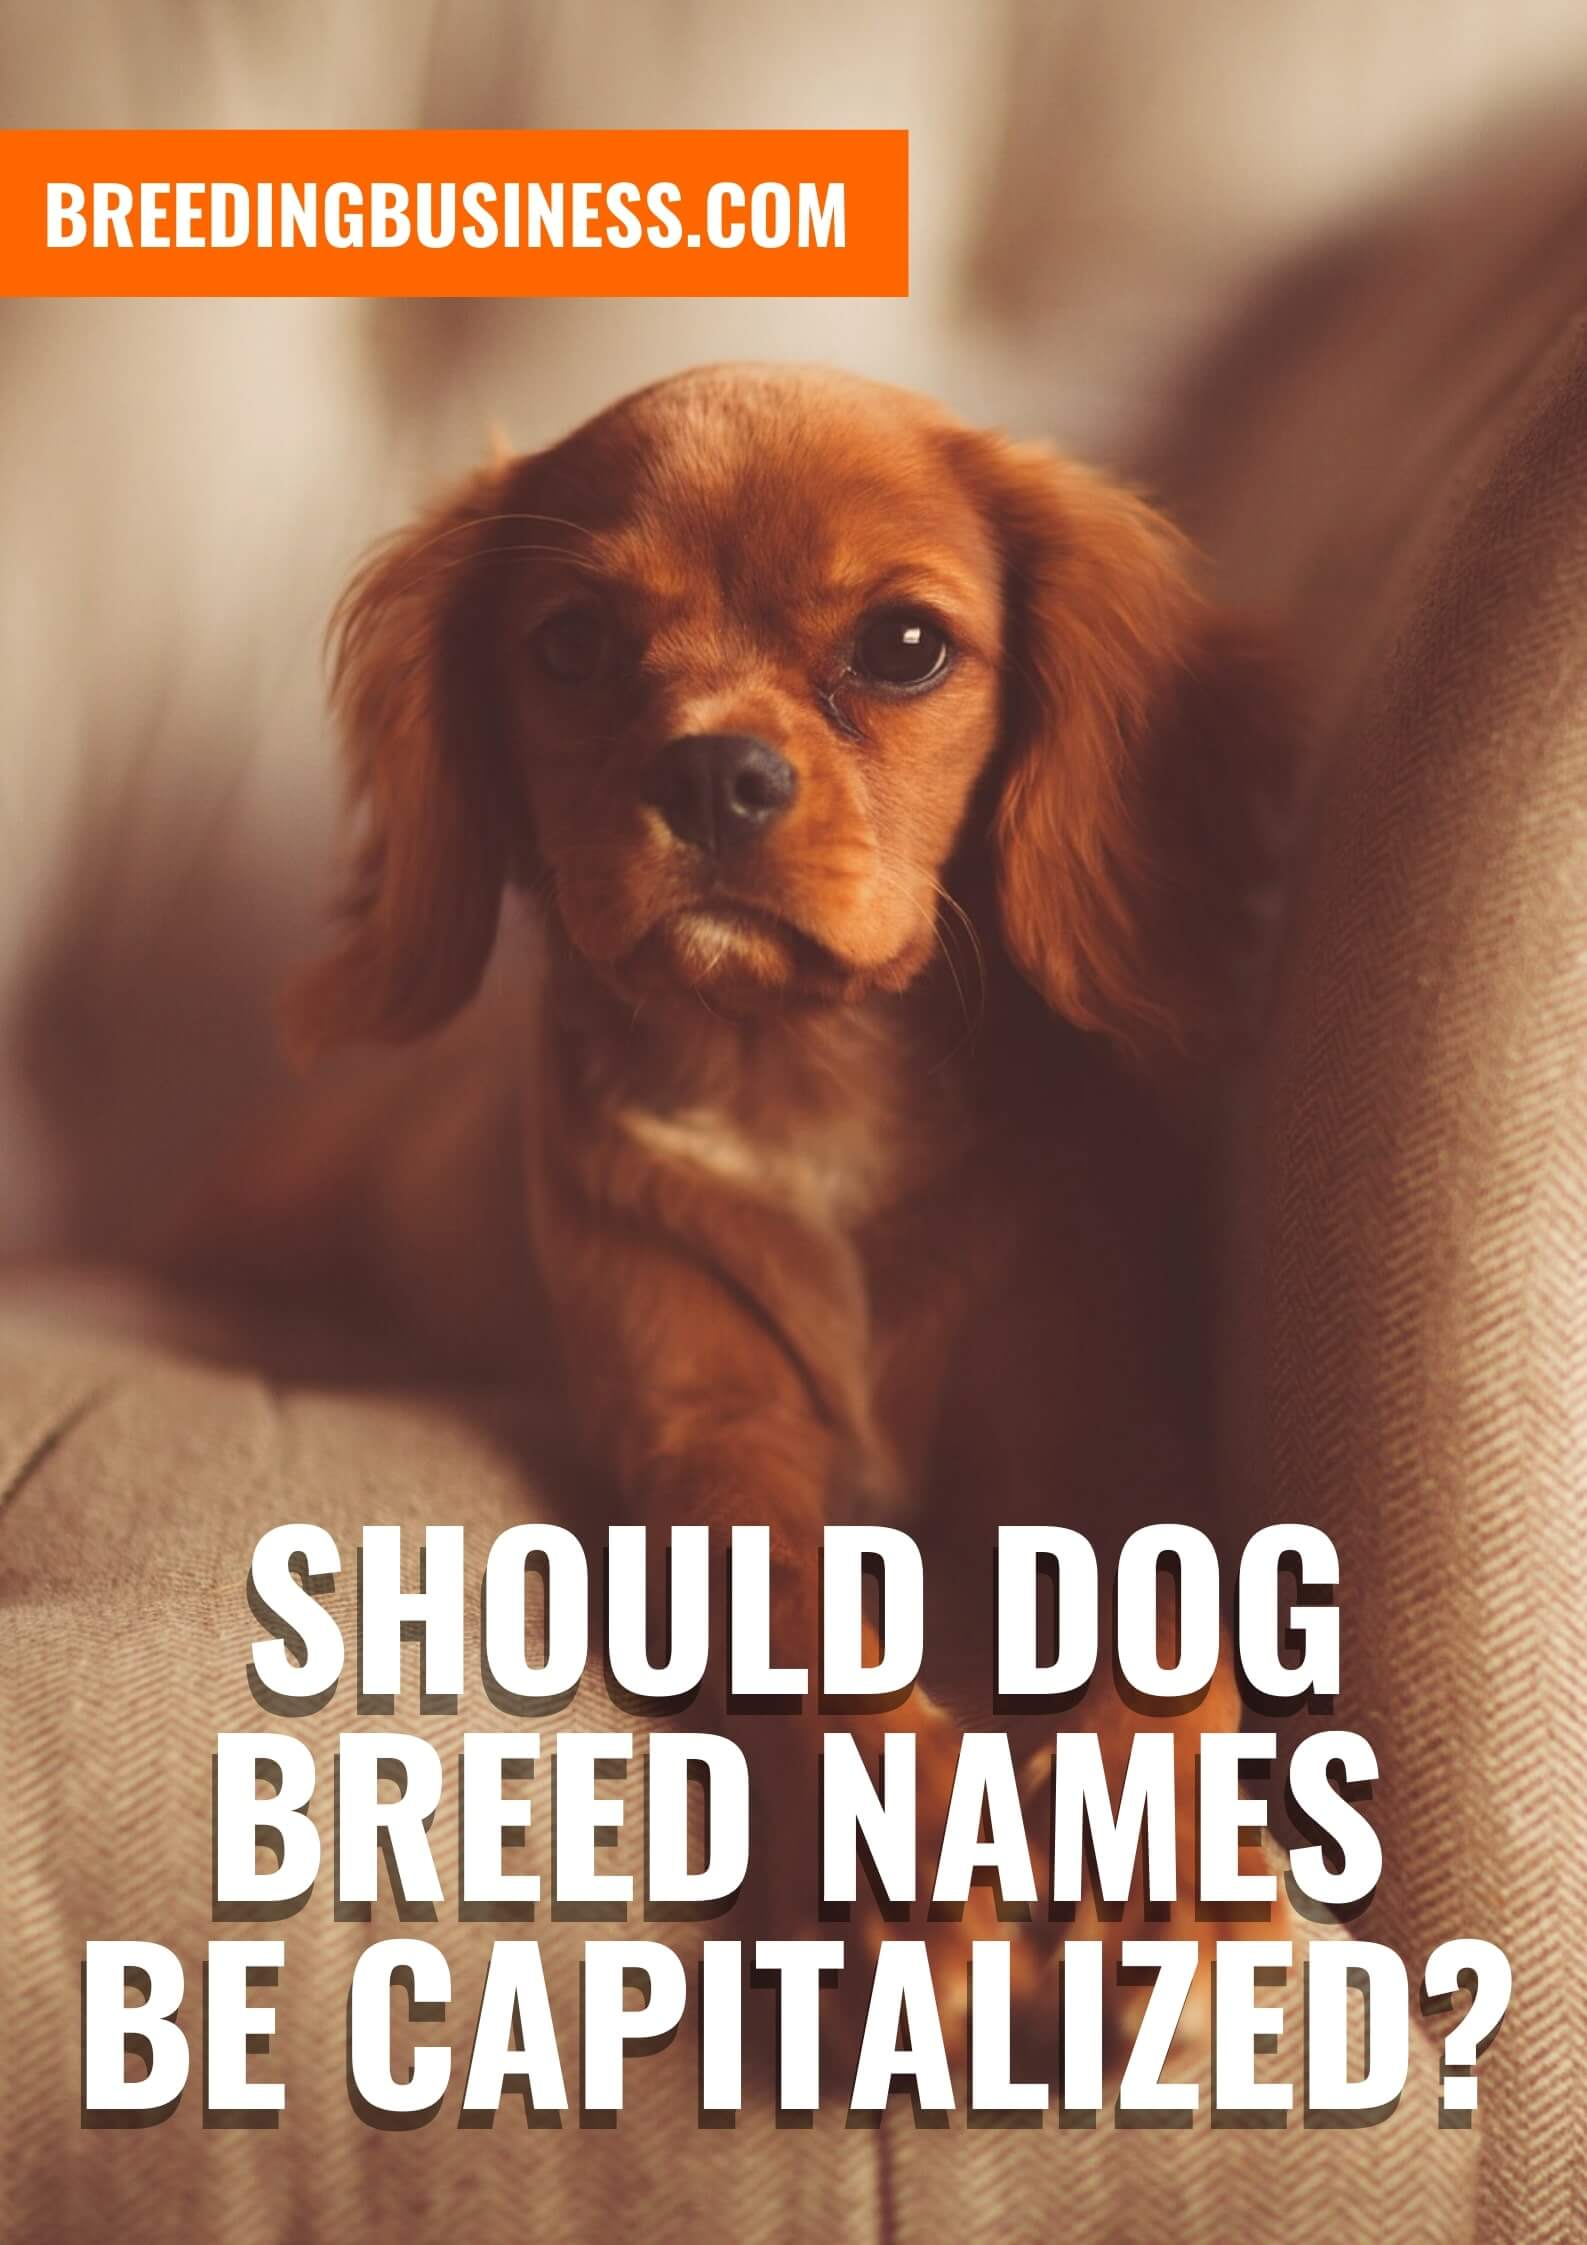 The capitalization of dog breeds.